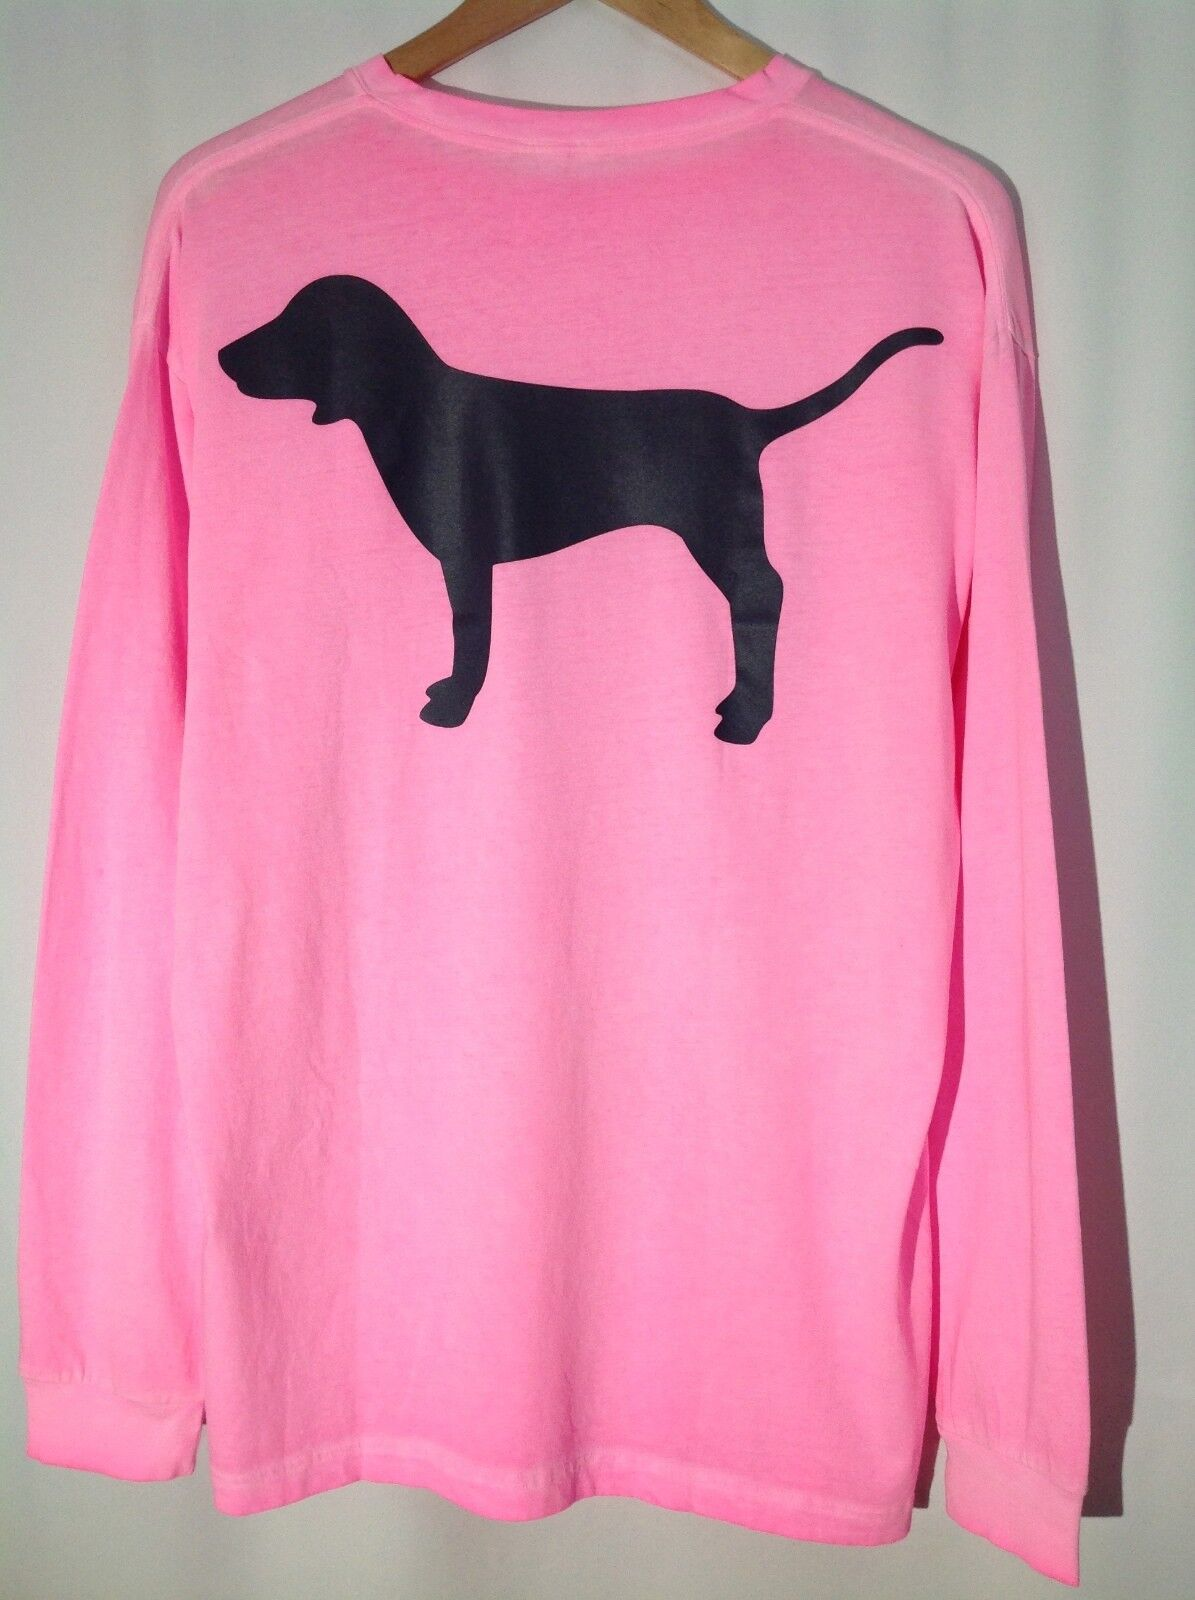 Victoria's Secret Pink - S - VINTAGE WASHED LONG SLEEVE CAMPUS TEE - NWT